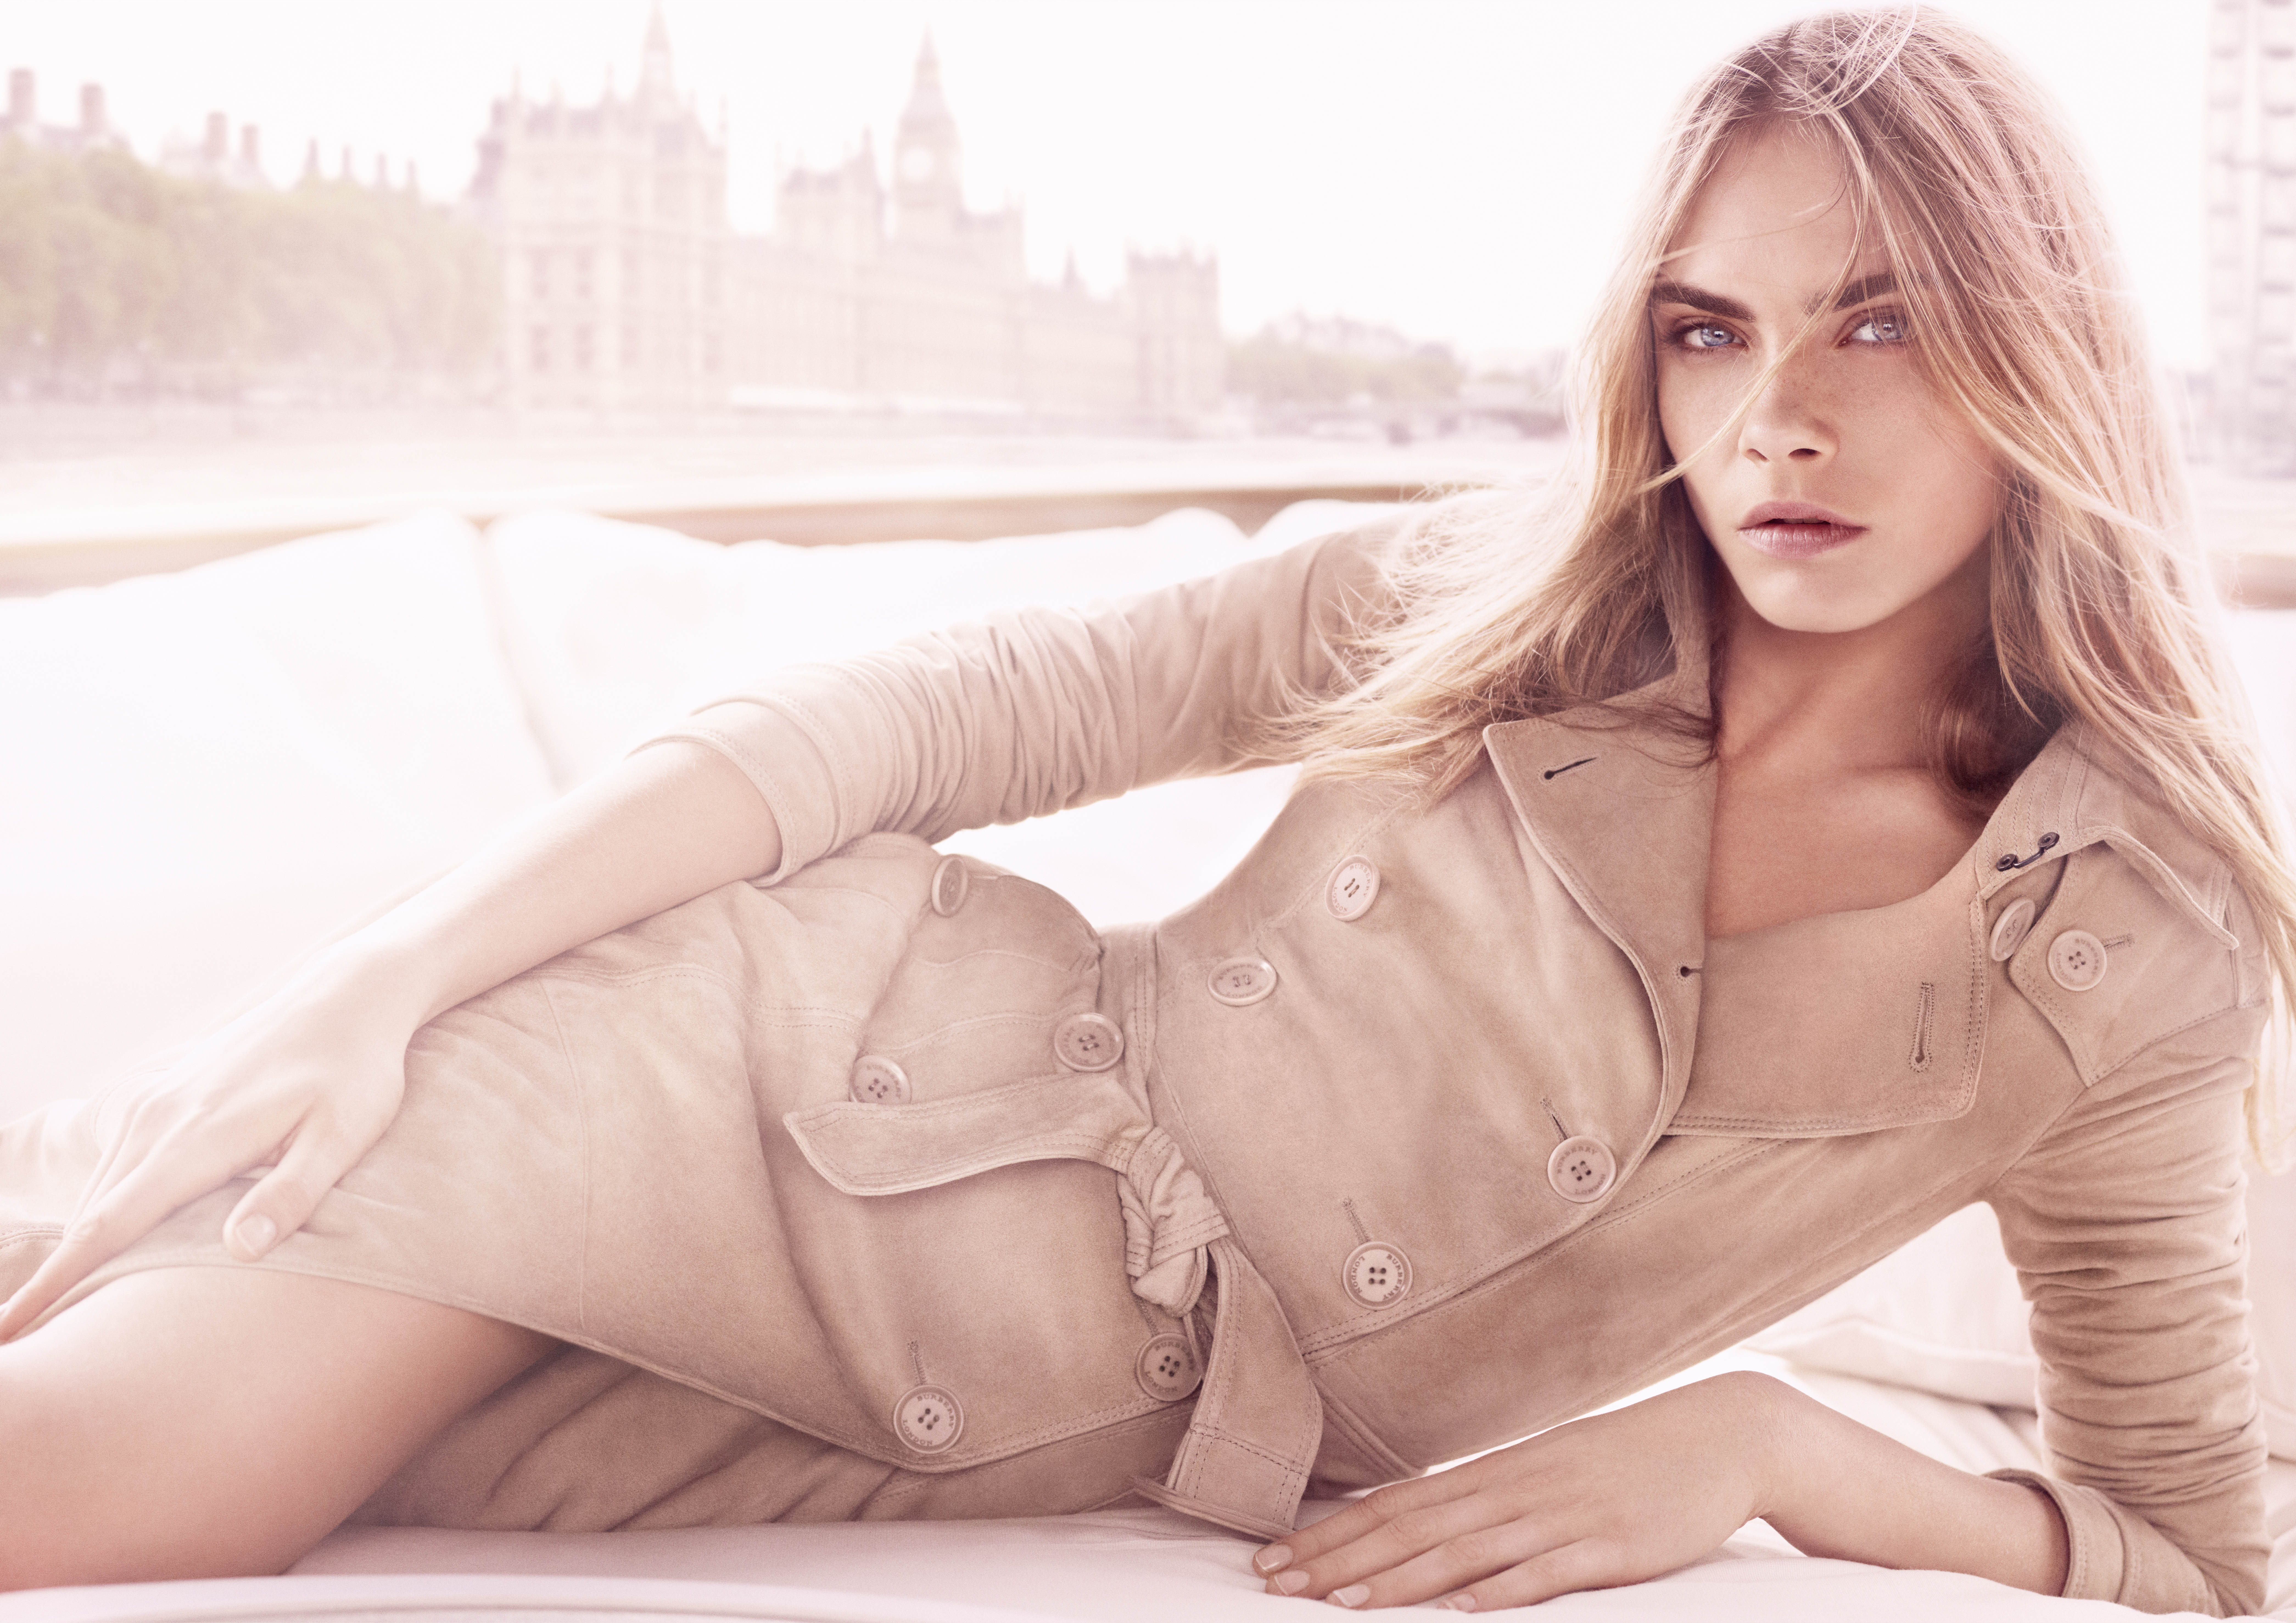 Burberry-Body-Tender-Campaign-1